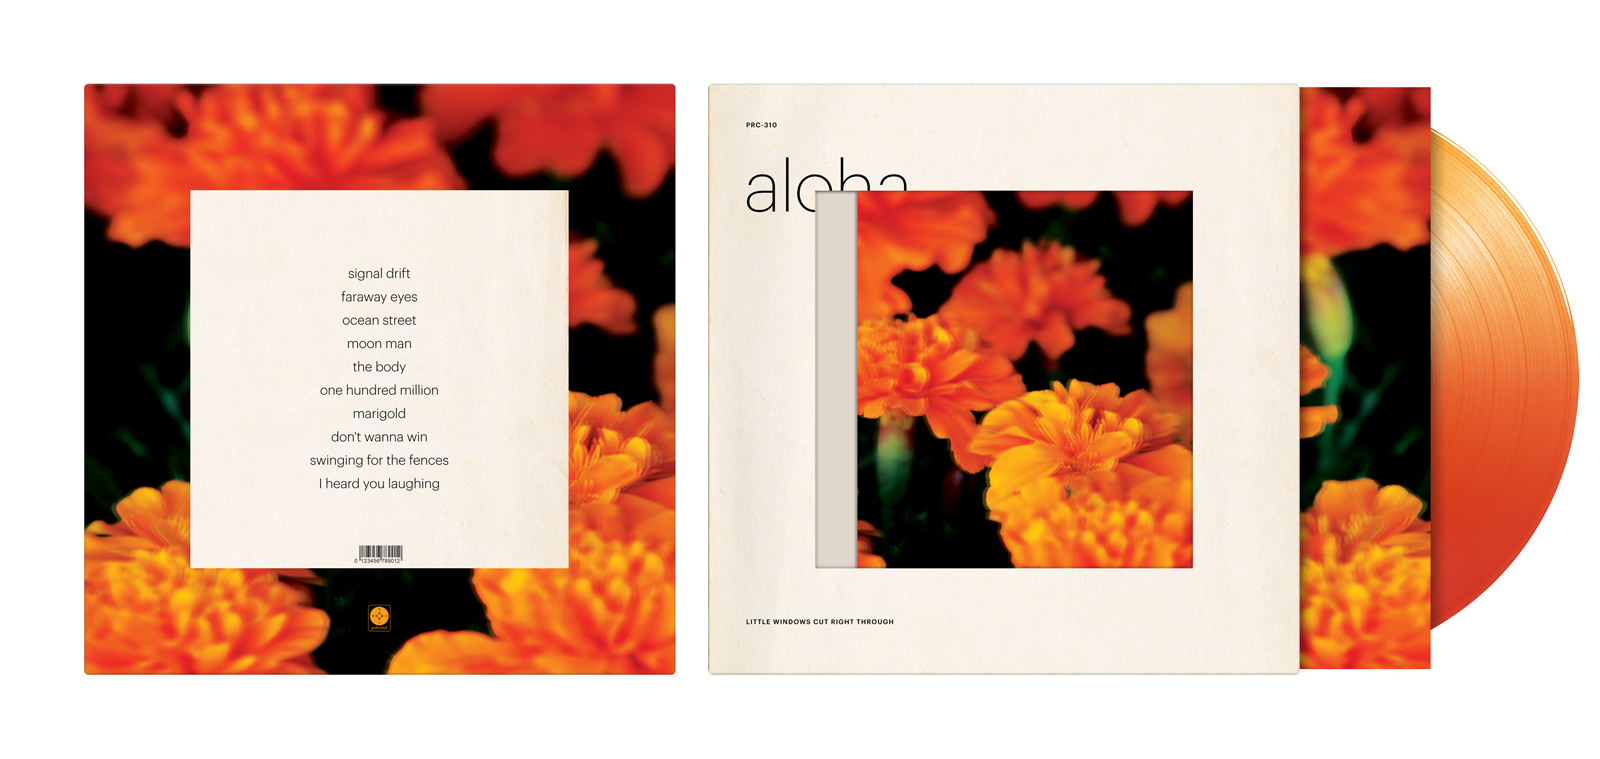 This unused version of the album art employed various techniques such as die cutting and lenticular printing, but unfortunately was not financially feasible.